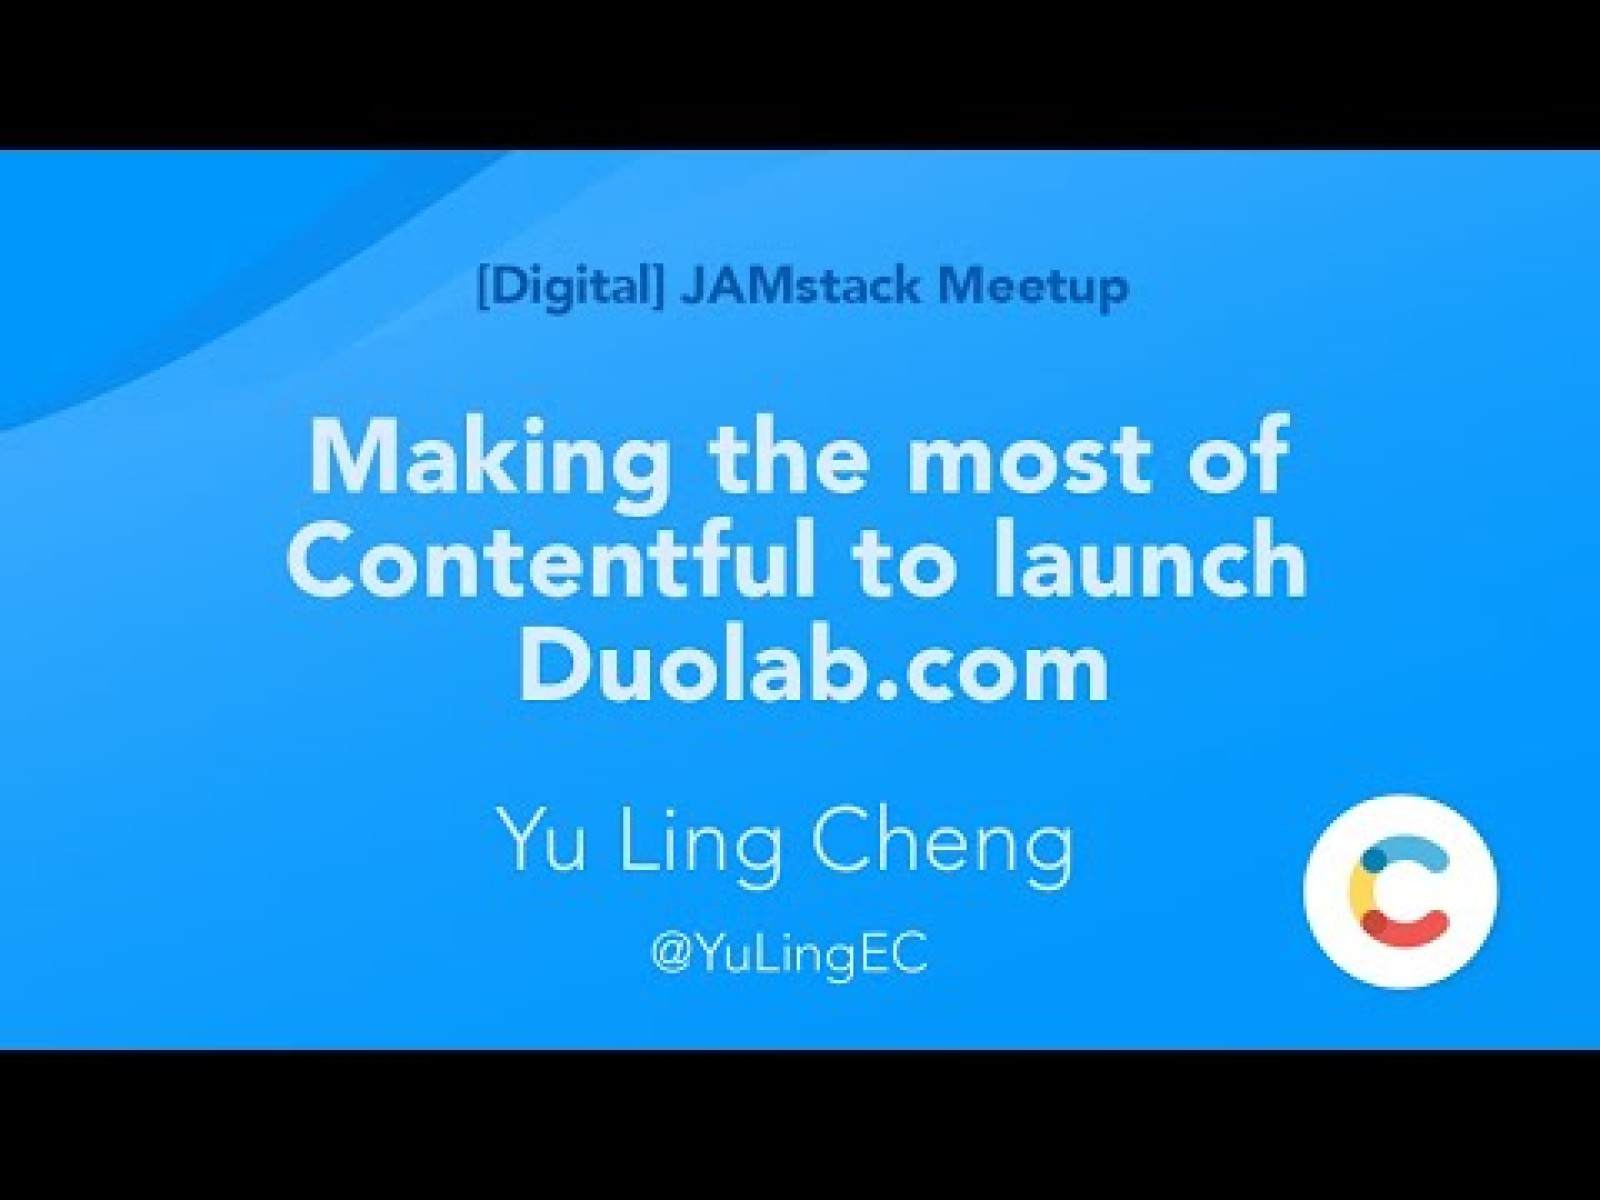 Making the most of Contentful to launch Duolab.com